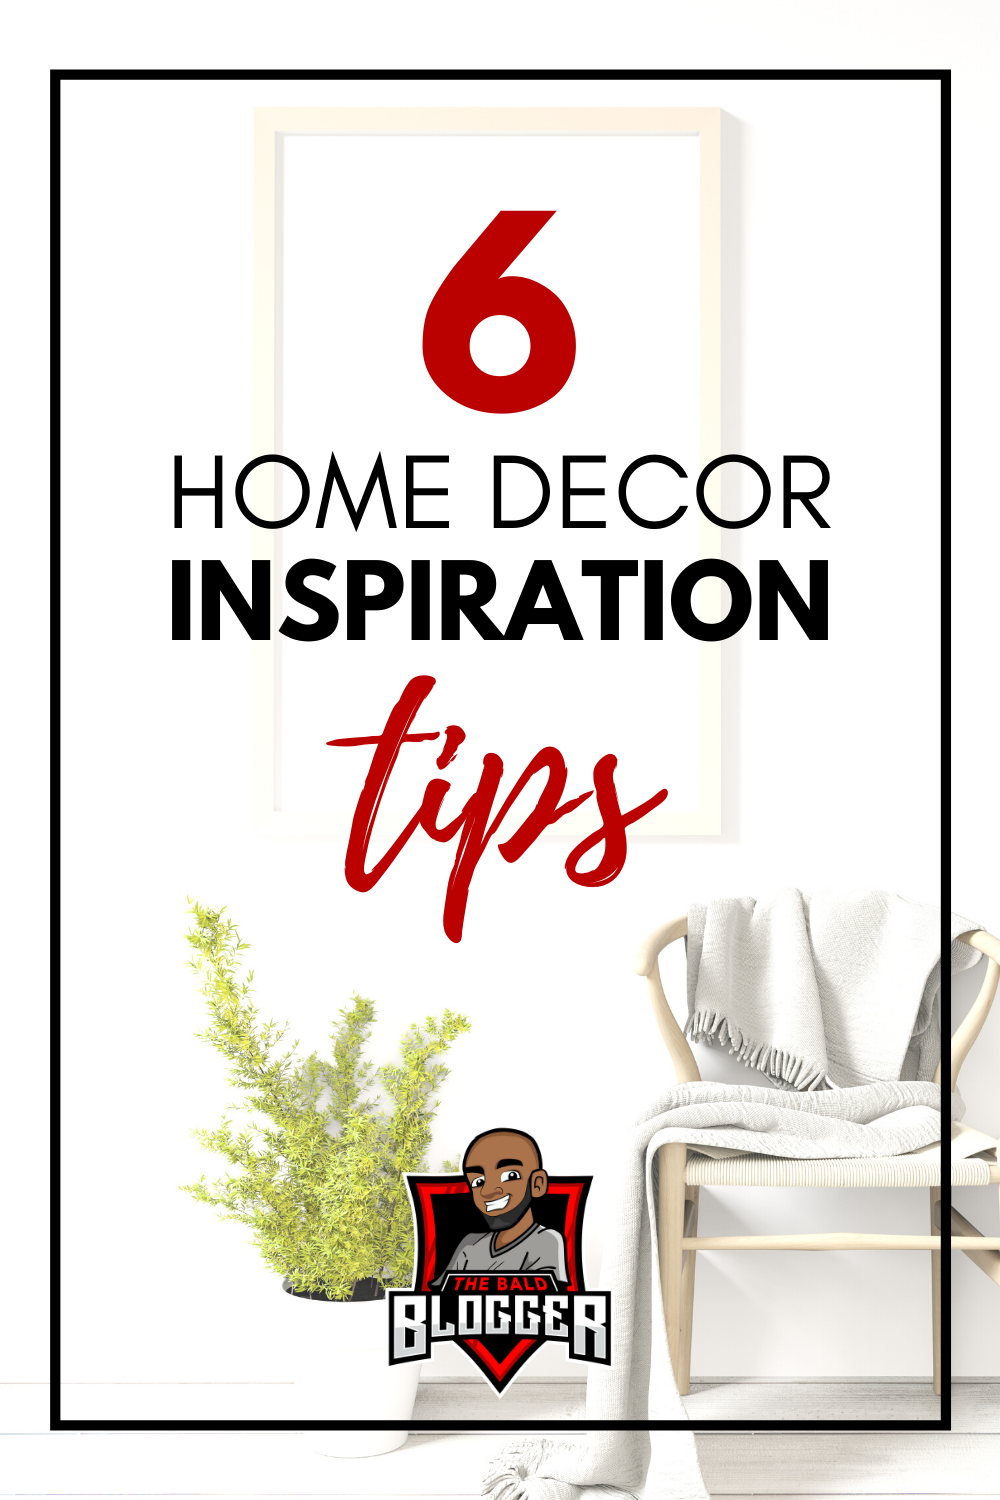 Home décor inspiration that can give you the ideas to transform your home. Check out these 6 home décor inspiration tips for you to follow.  #homedecorinspiration #homedecorinspirationcozy #homedecorinspirationmodern #homedecorinspirationclassy